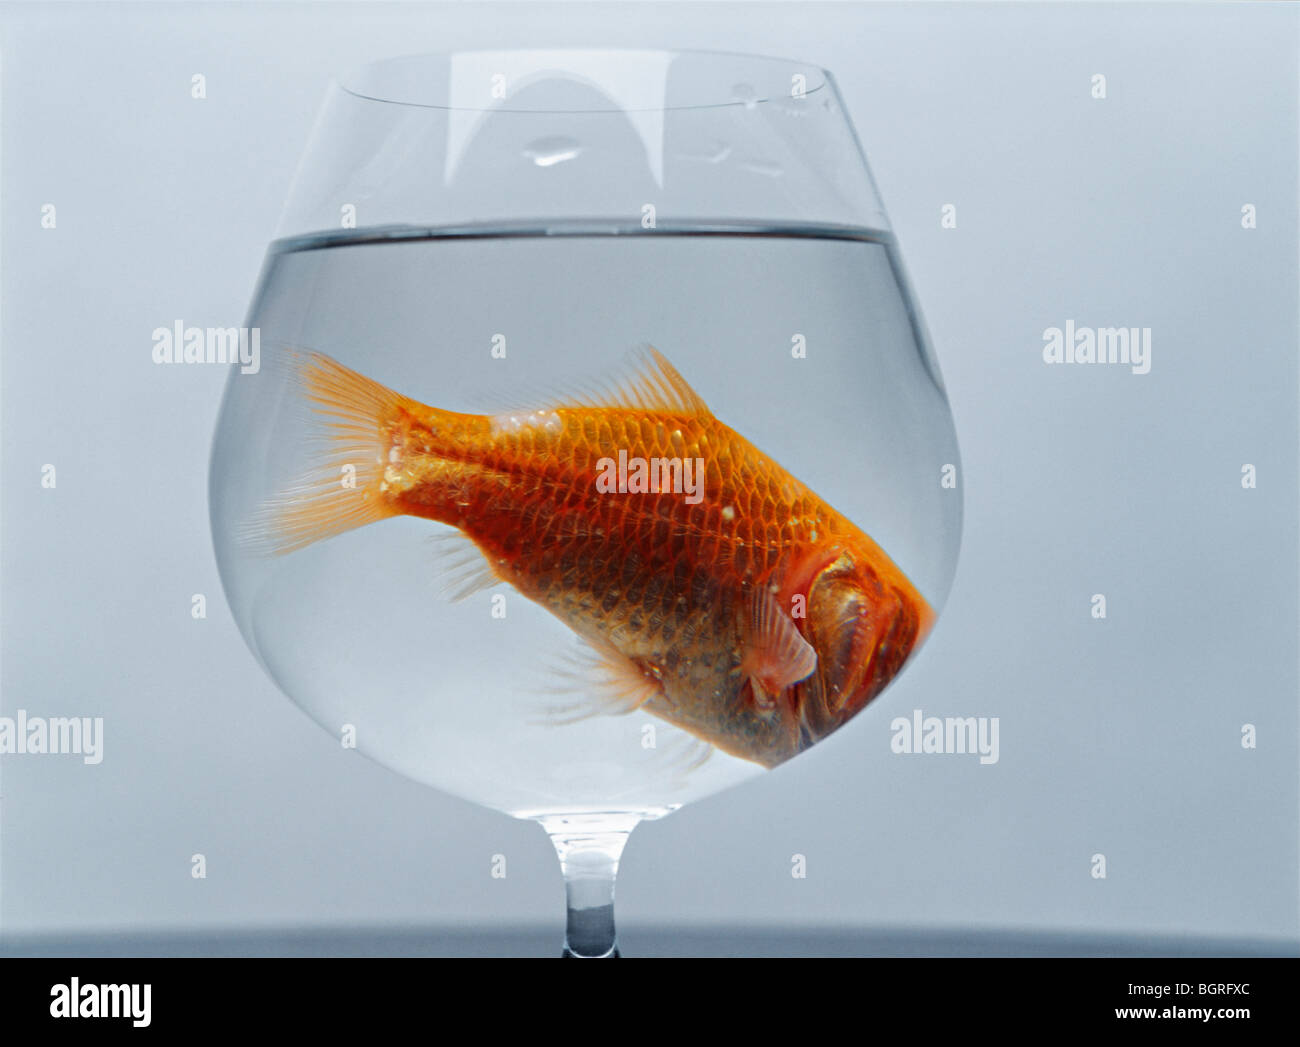 A goldfish in a wineglass. - Stock Image